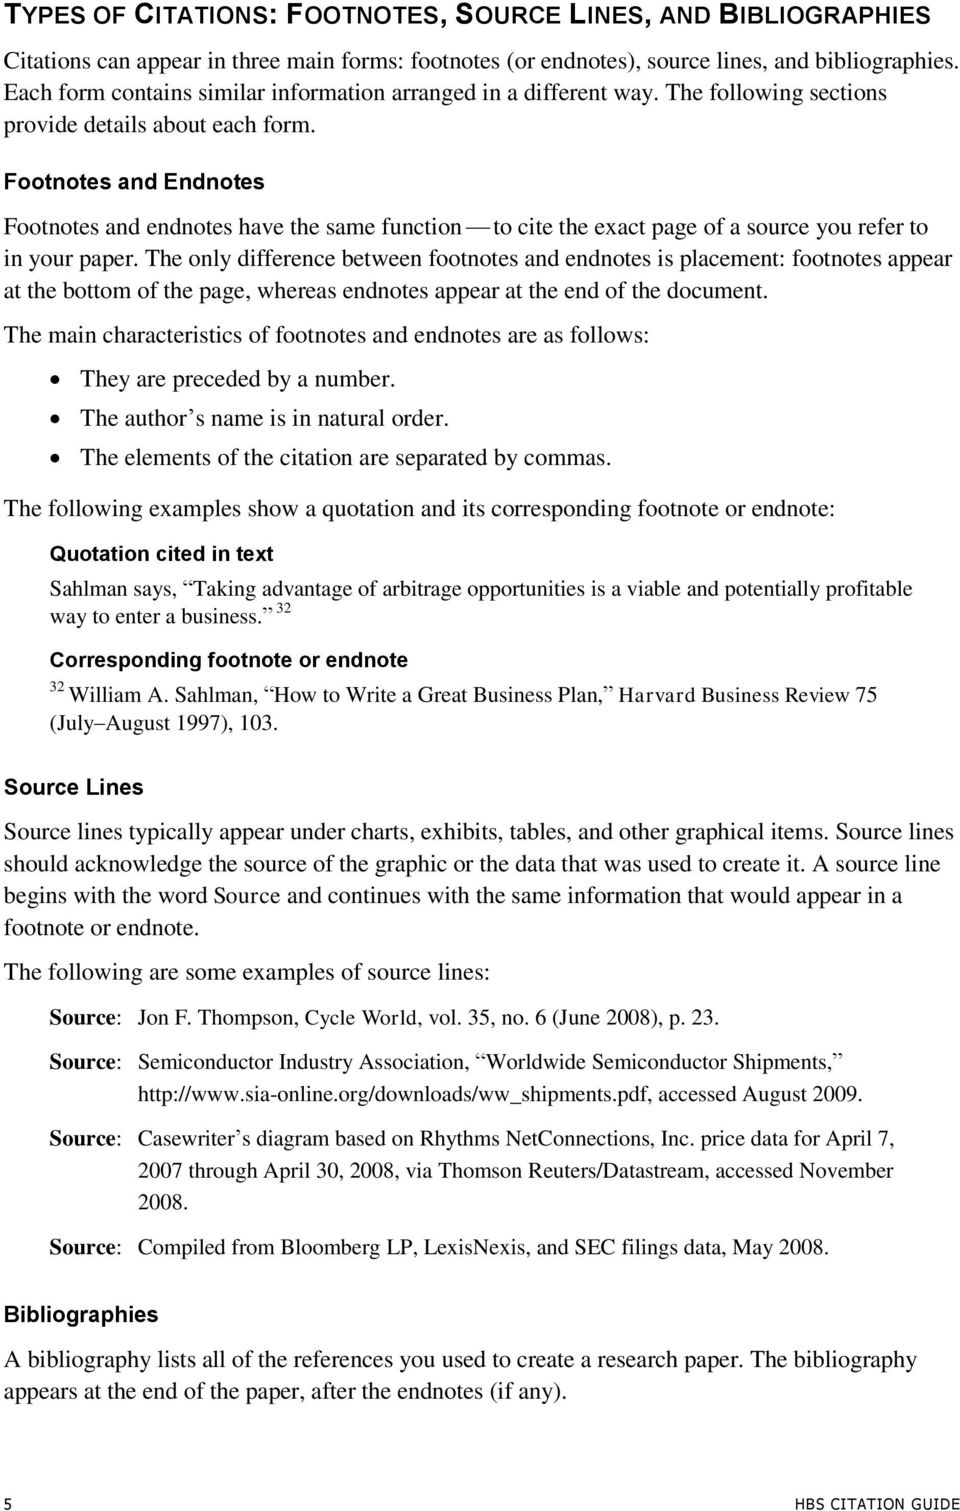 s and Endnotes s and endnotes have the same function to cite the exact page of a source you refer to in your paper.